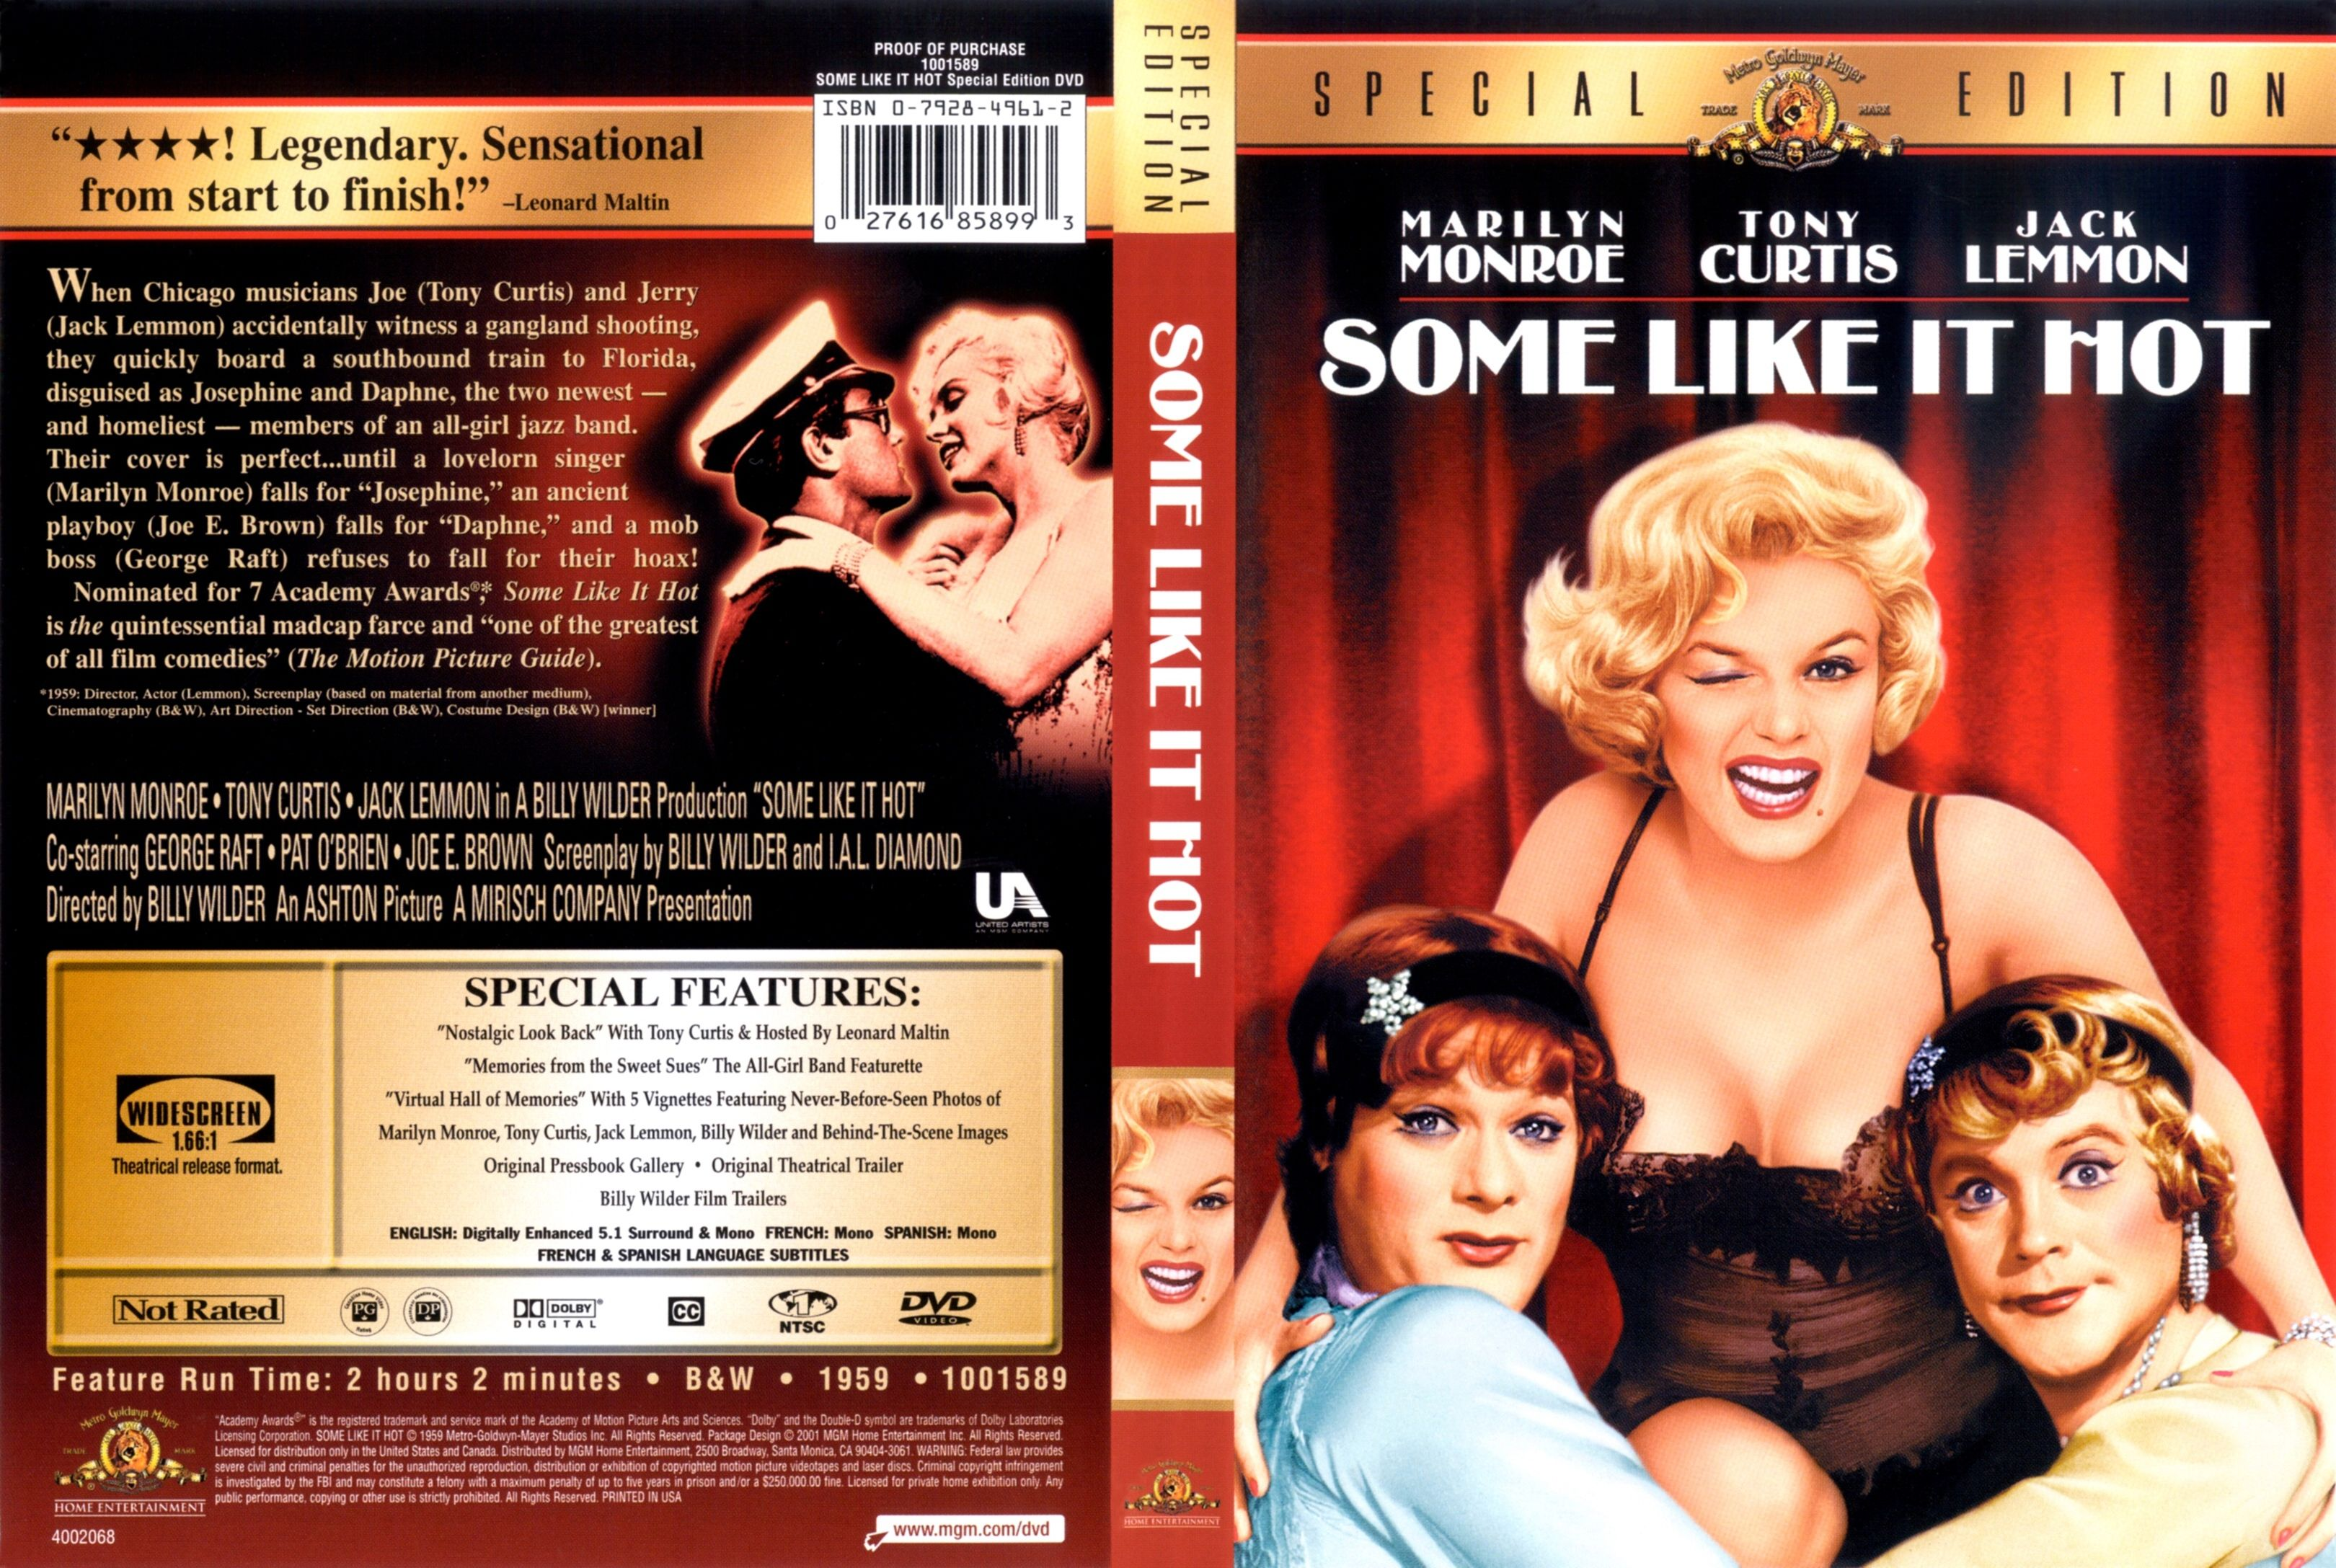 Some Like It Hot Dvd Covers Some Like It Hot Tony Curtis